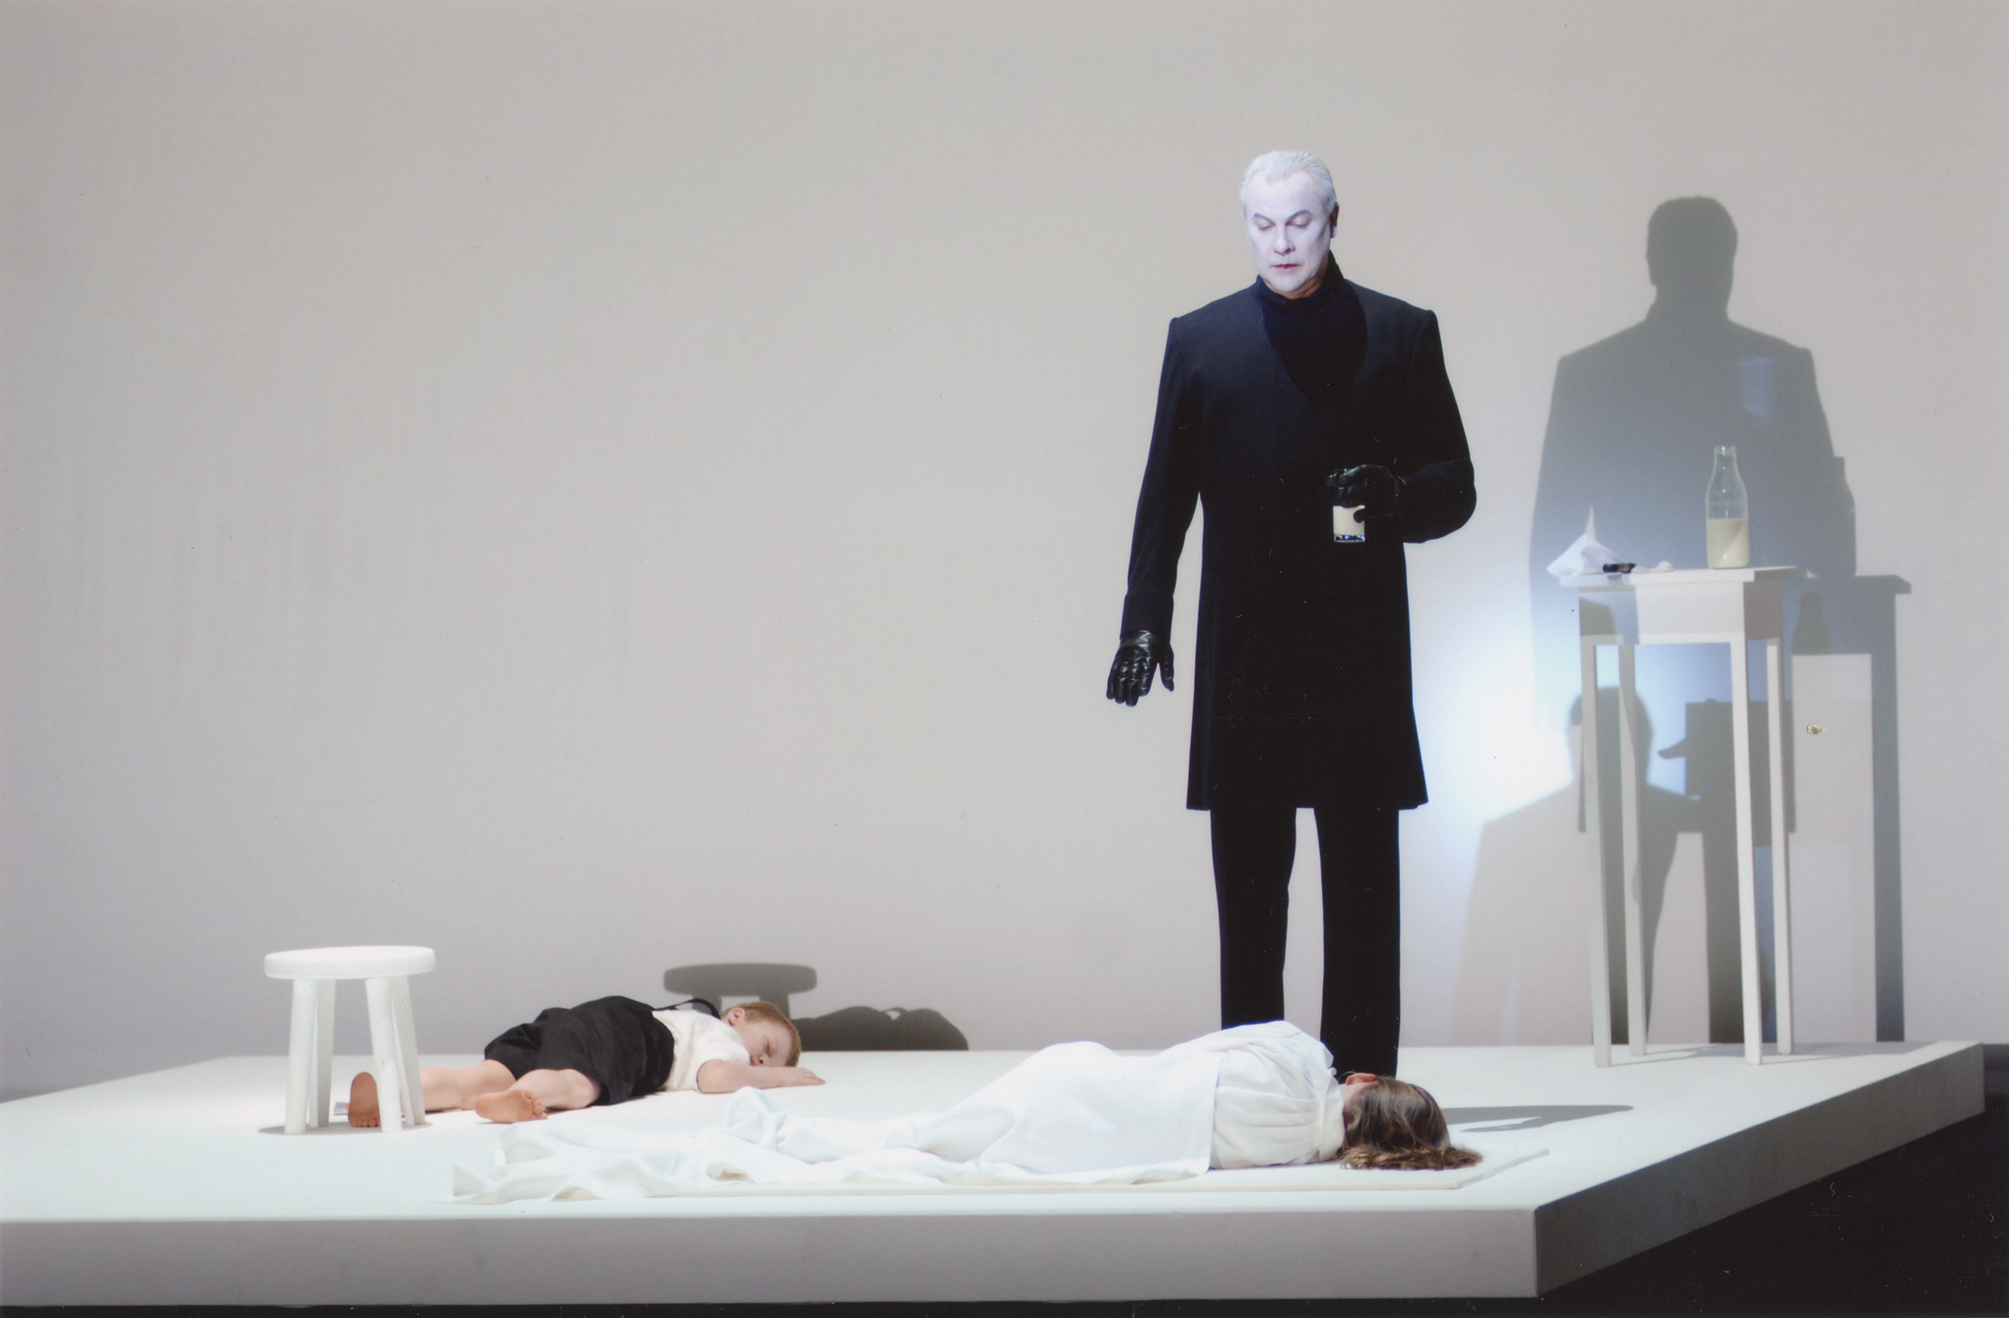 Robert Wilson performing 'Murder Scene' from Deafman Glance as a Prologue to Expectation, Berlin, 2004